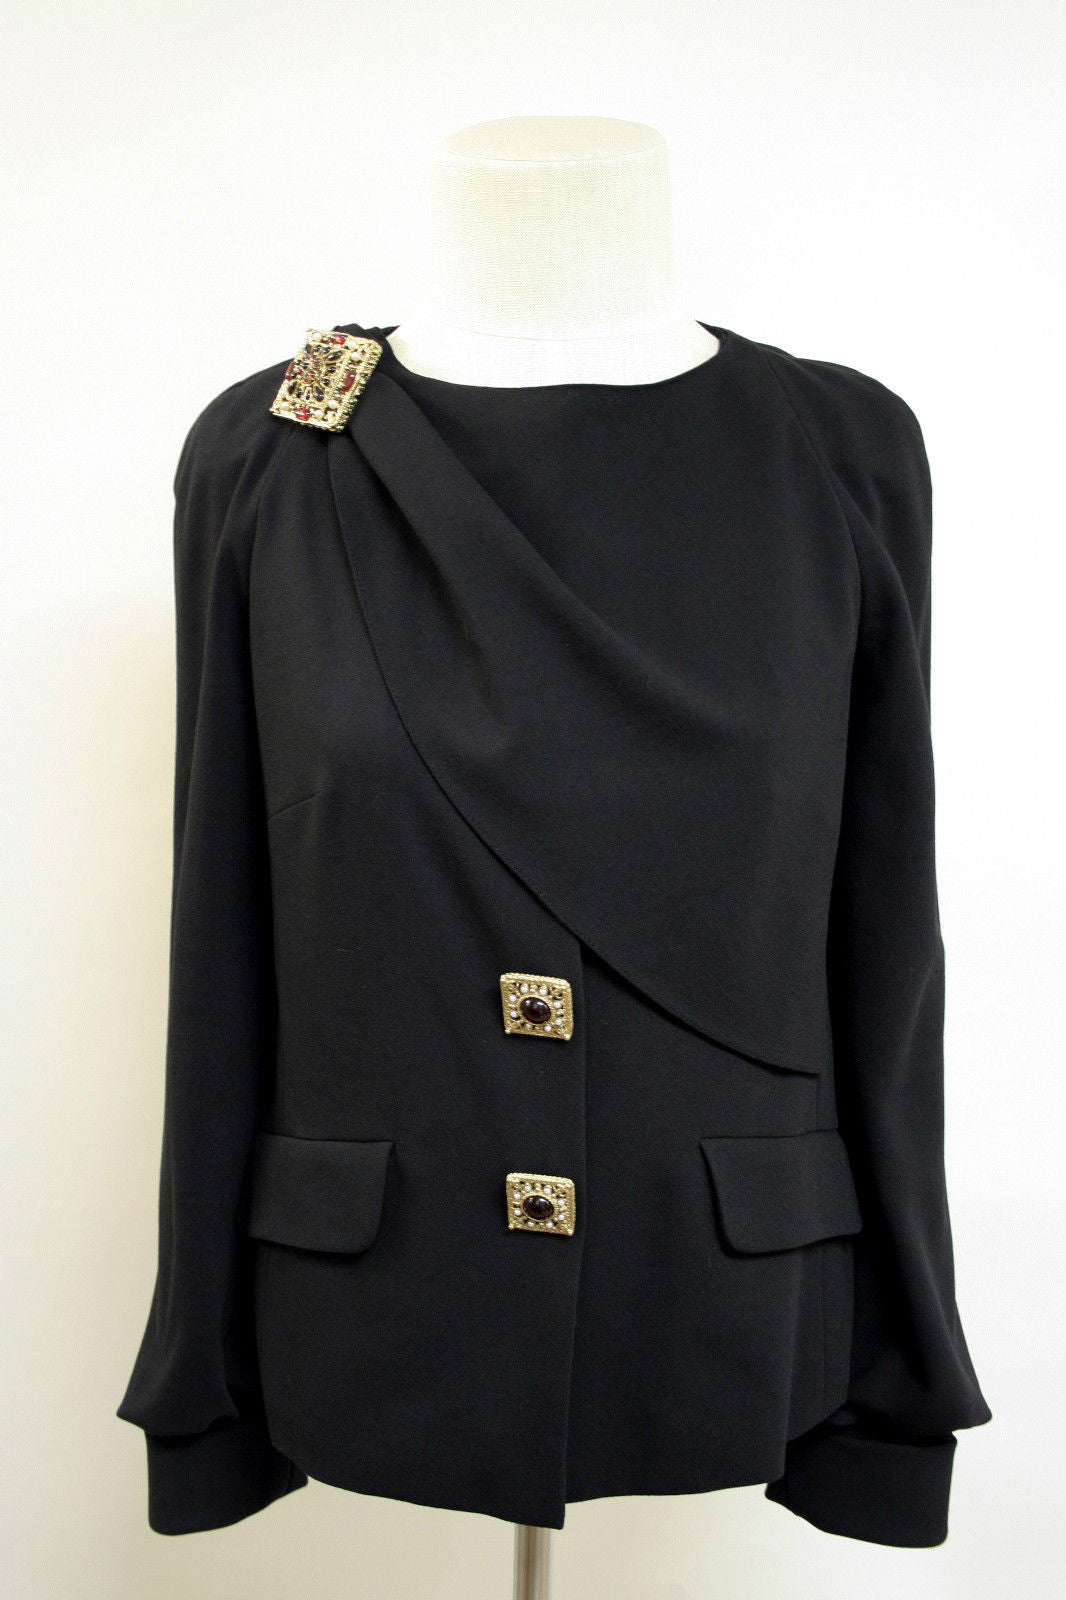 bisbiz.com CHANEL  Black Wool-Blend Gripoix Buttons & Pin Jacket Skirt Suit  Size: Fr36/US4 - Bis Luxury Resale